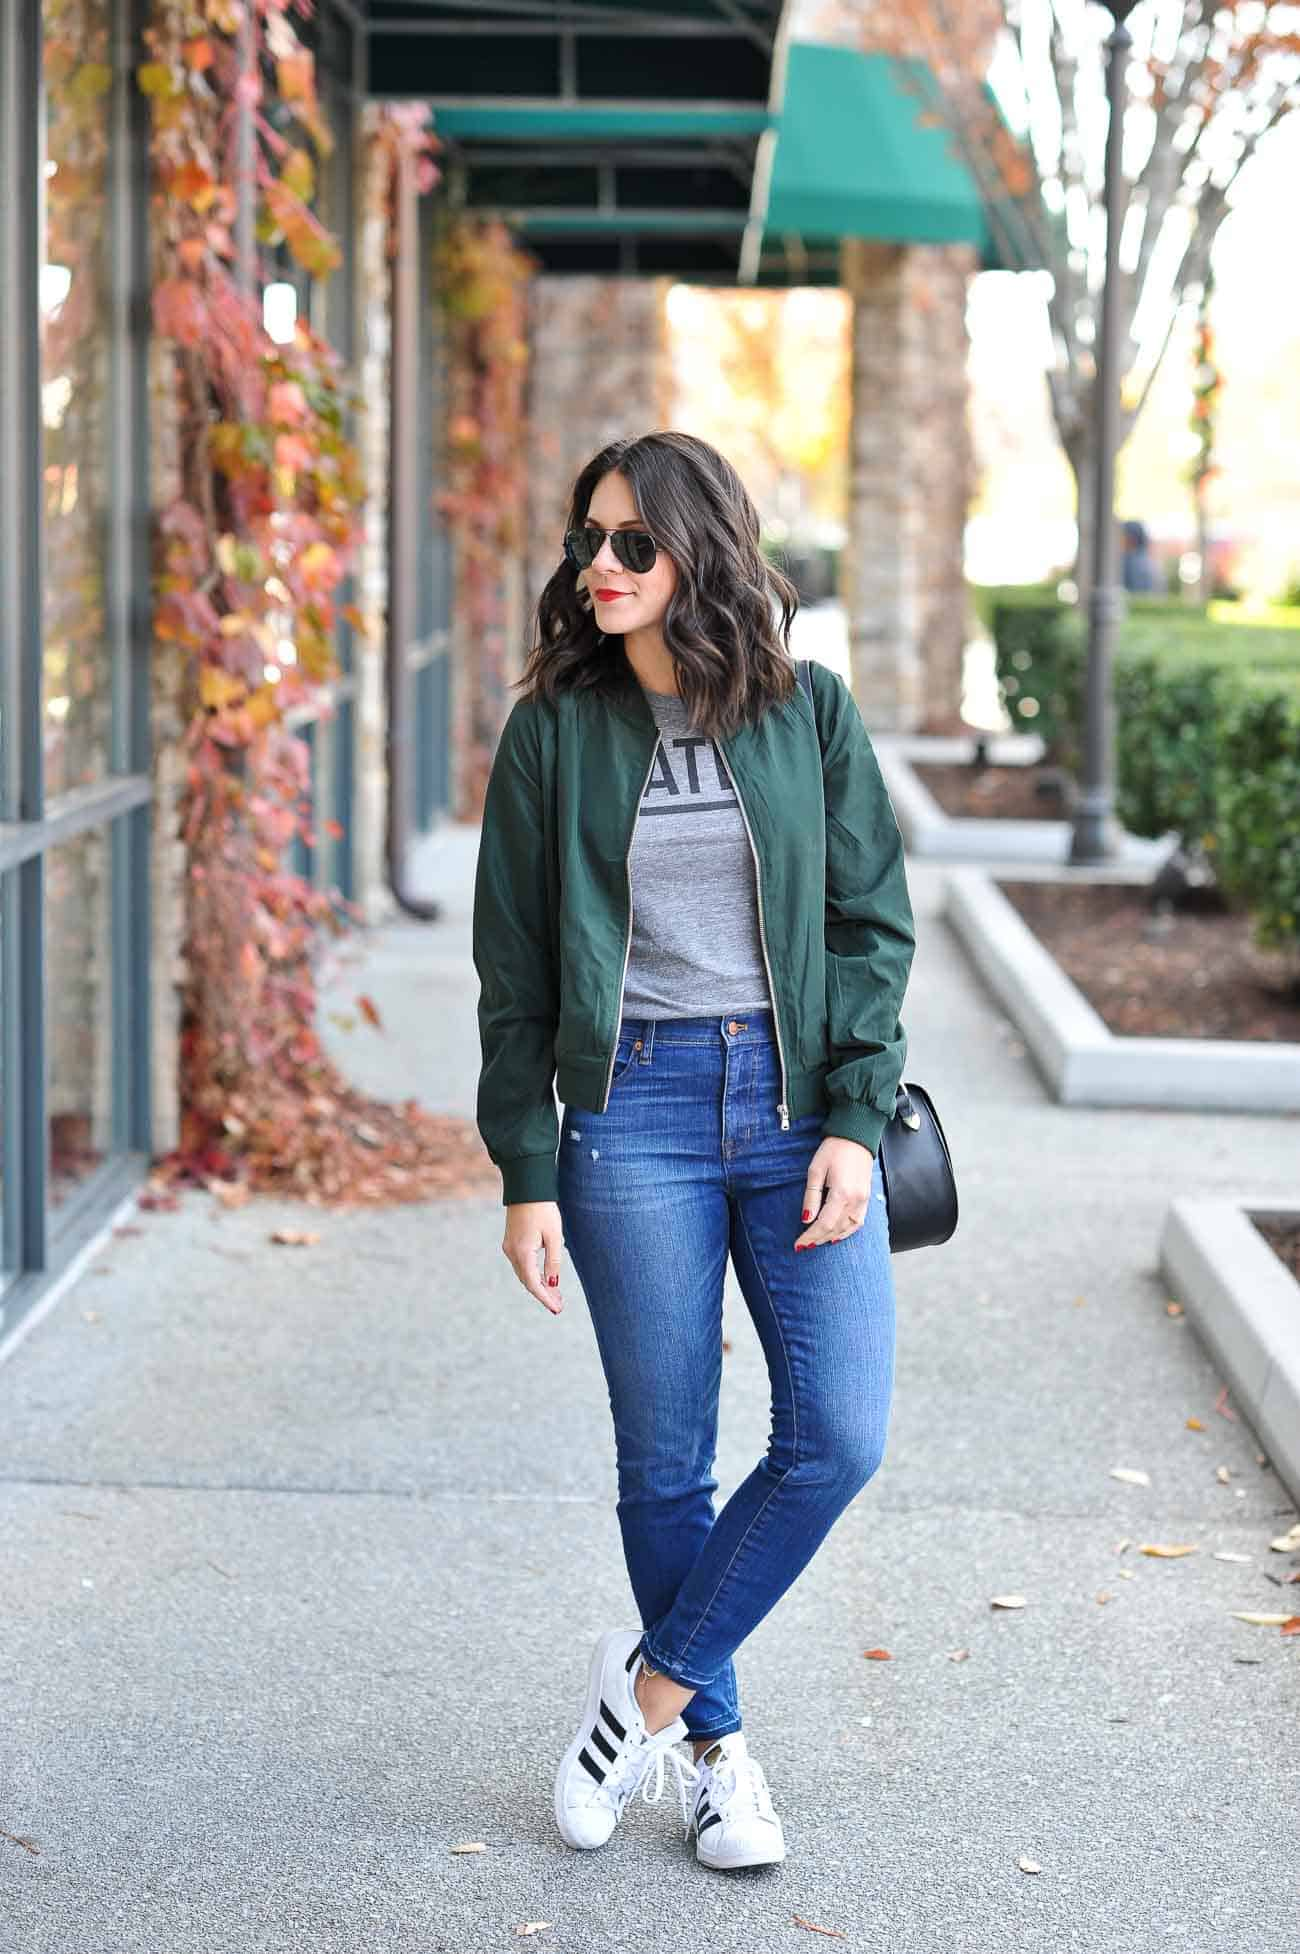 how to style a bomber jacket, fall outfits, adidas outfits, casual outfits - My Style Vita @mystylevita